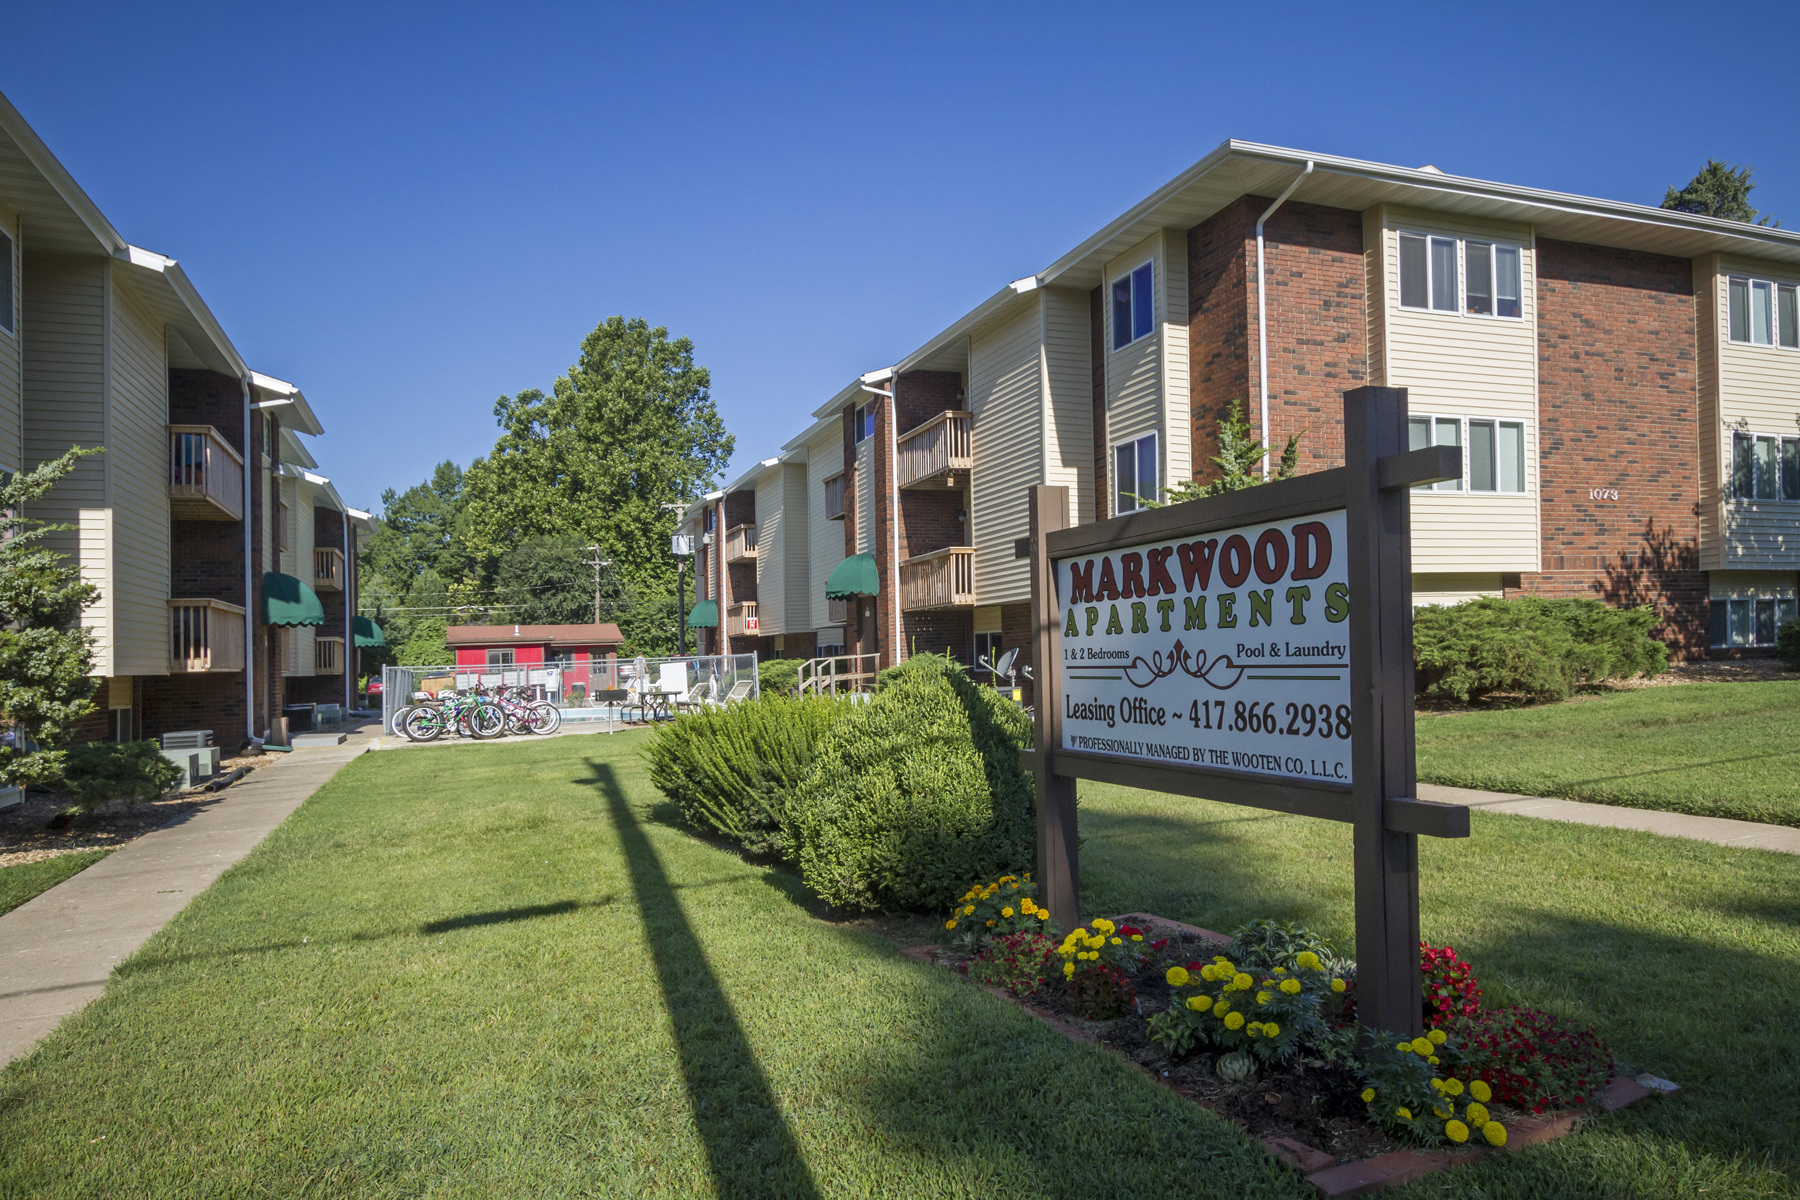 Markwood Apartments